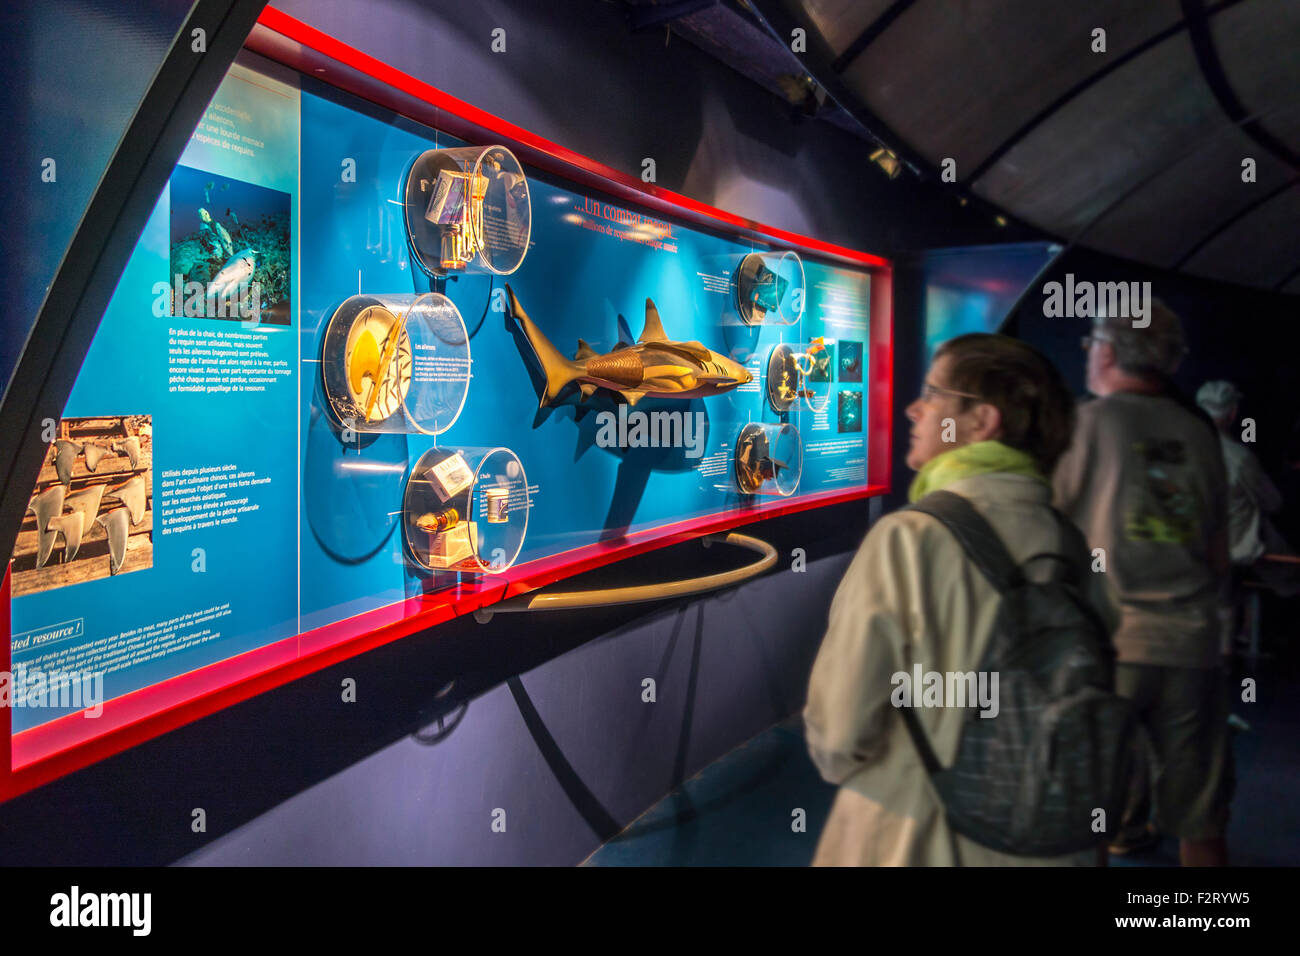 Visitors looking at display about sharks at Oceanopolis - ocean discovery park - at Brest, Brittany, France - Stock Image